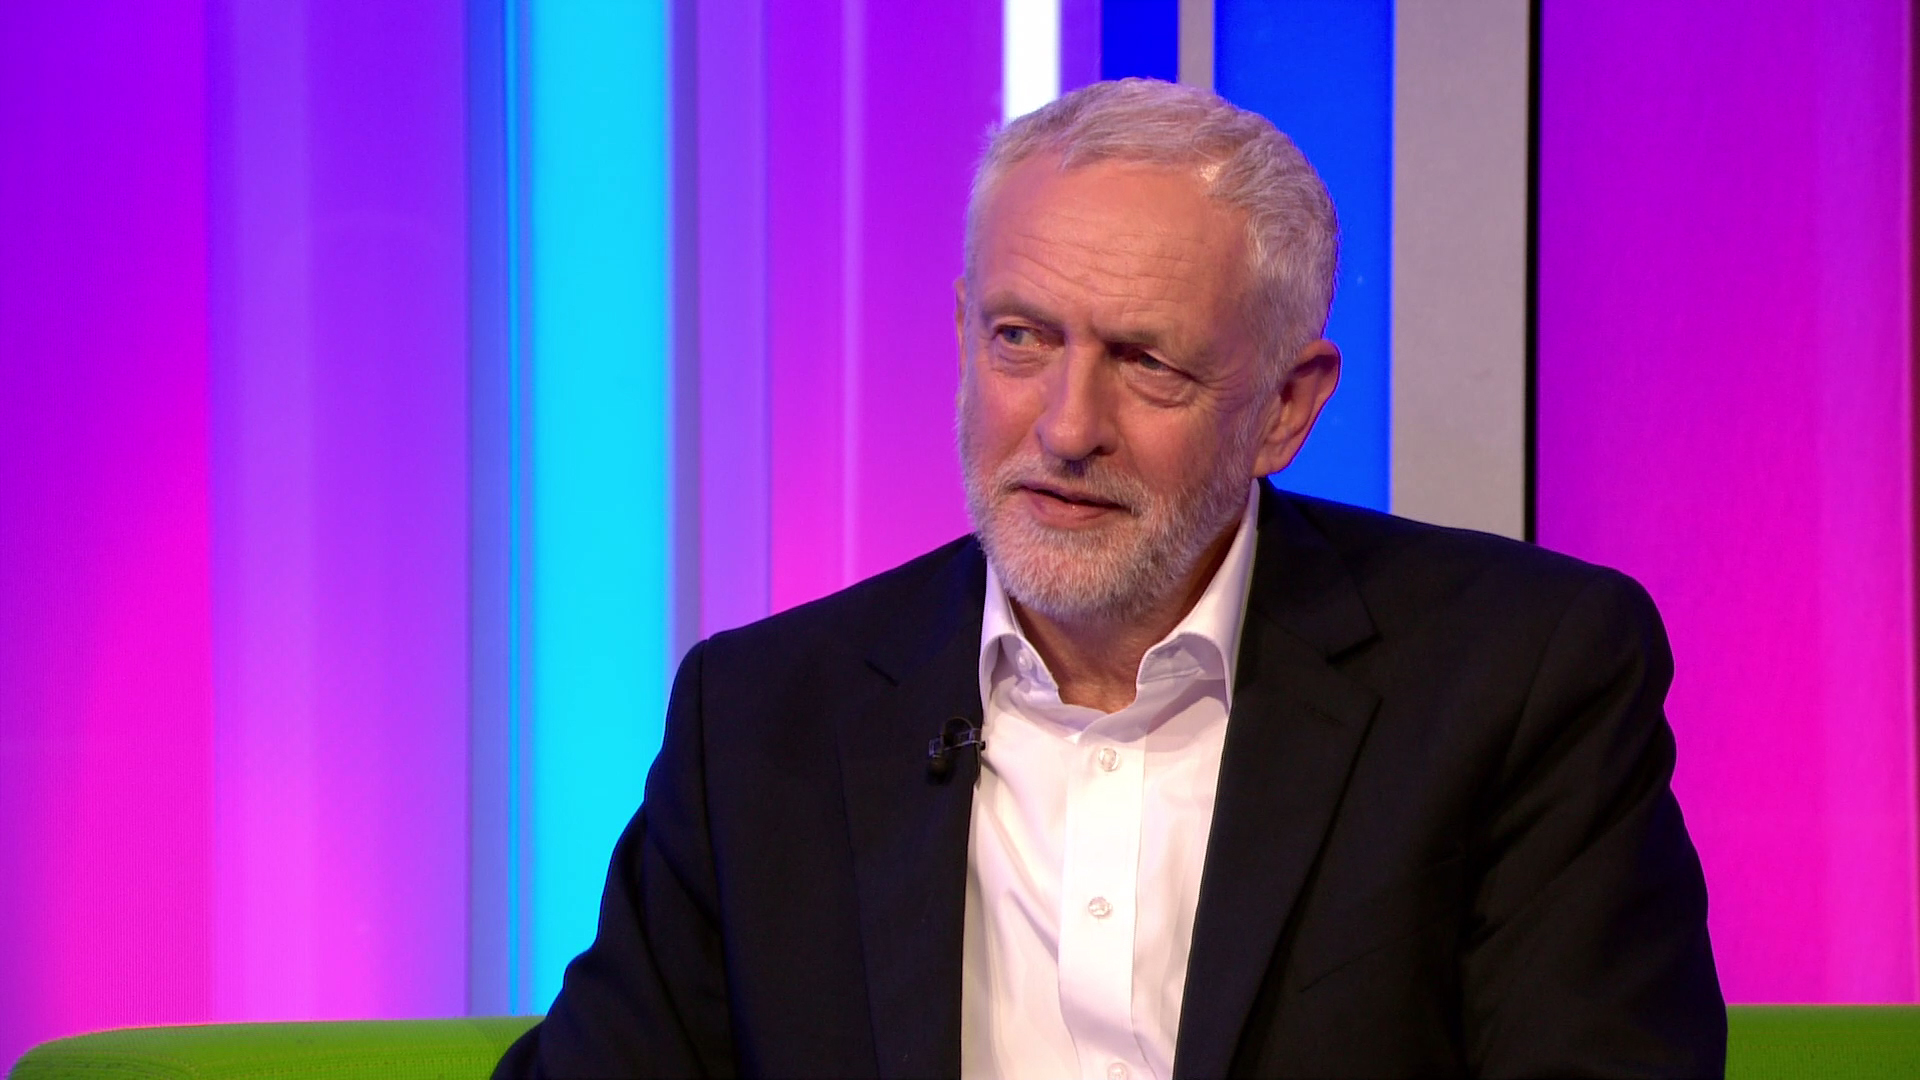 Jeremy Corbyn was on The One Show and he gave them a pot of jam